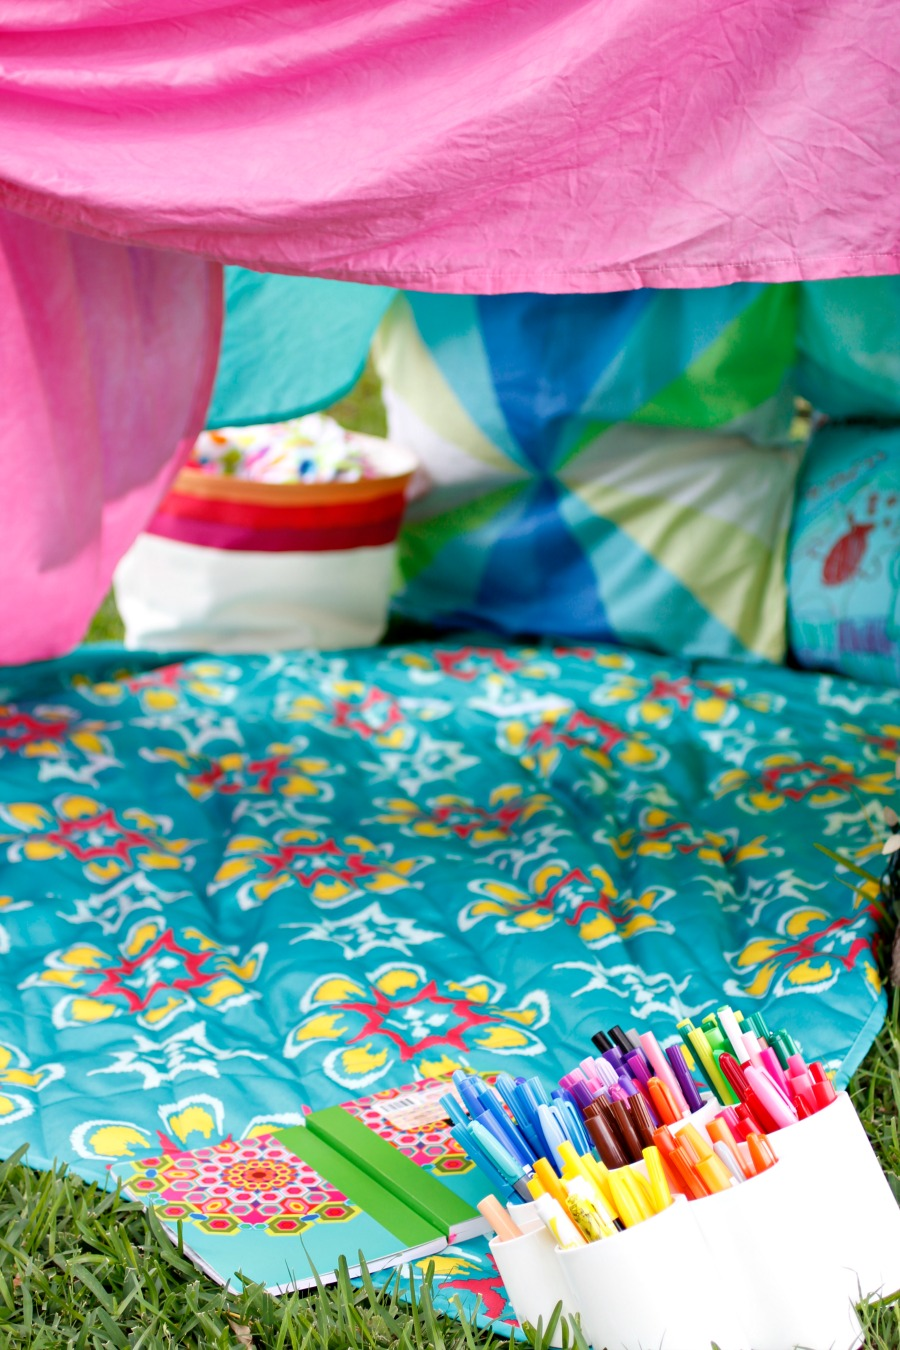 blanket fort coloring spot in the backyard -- great idea for a lazy summer afternoon